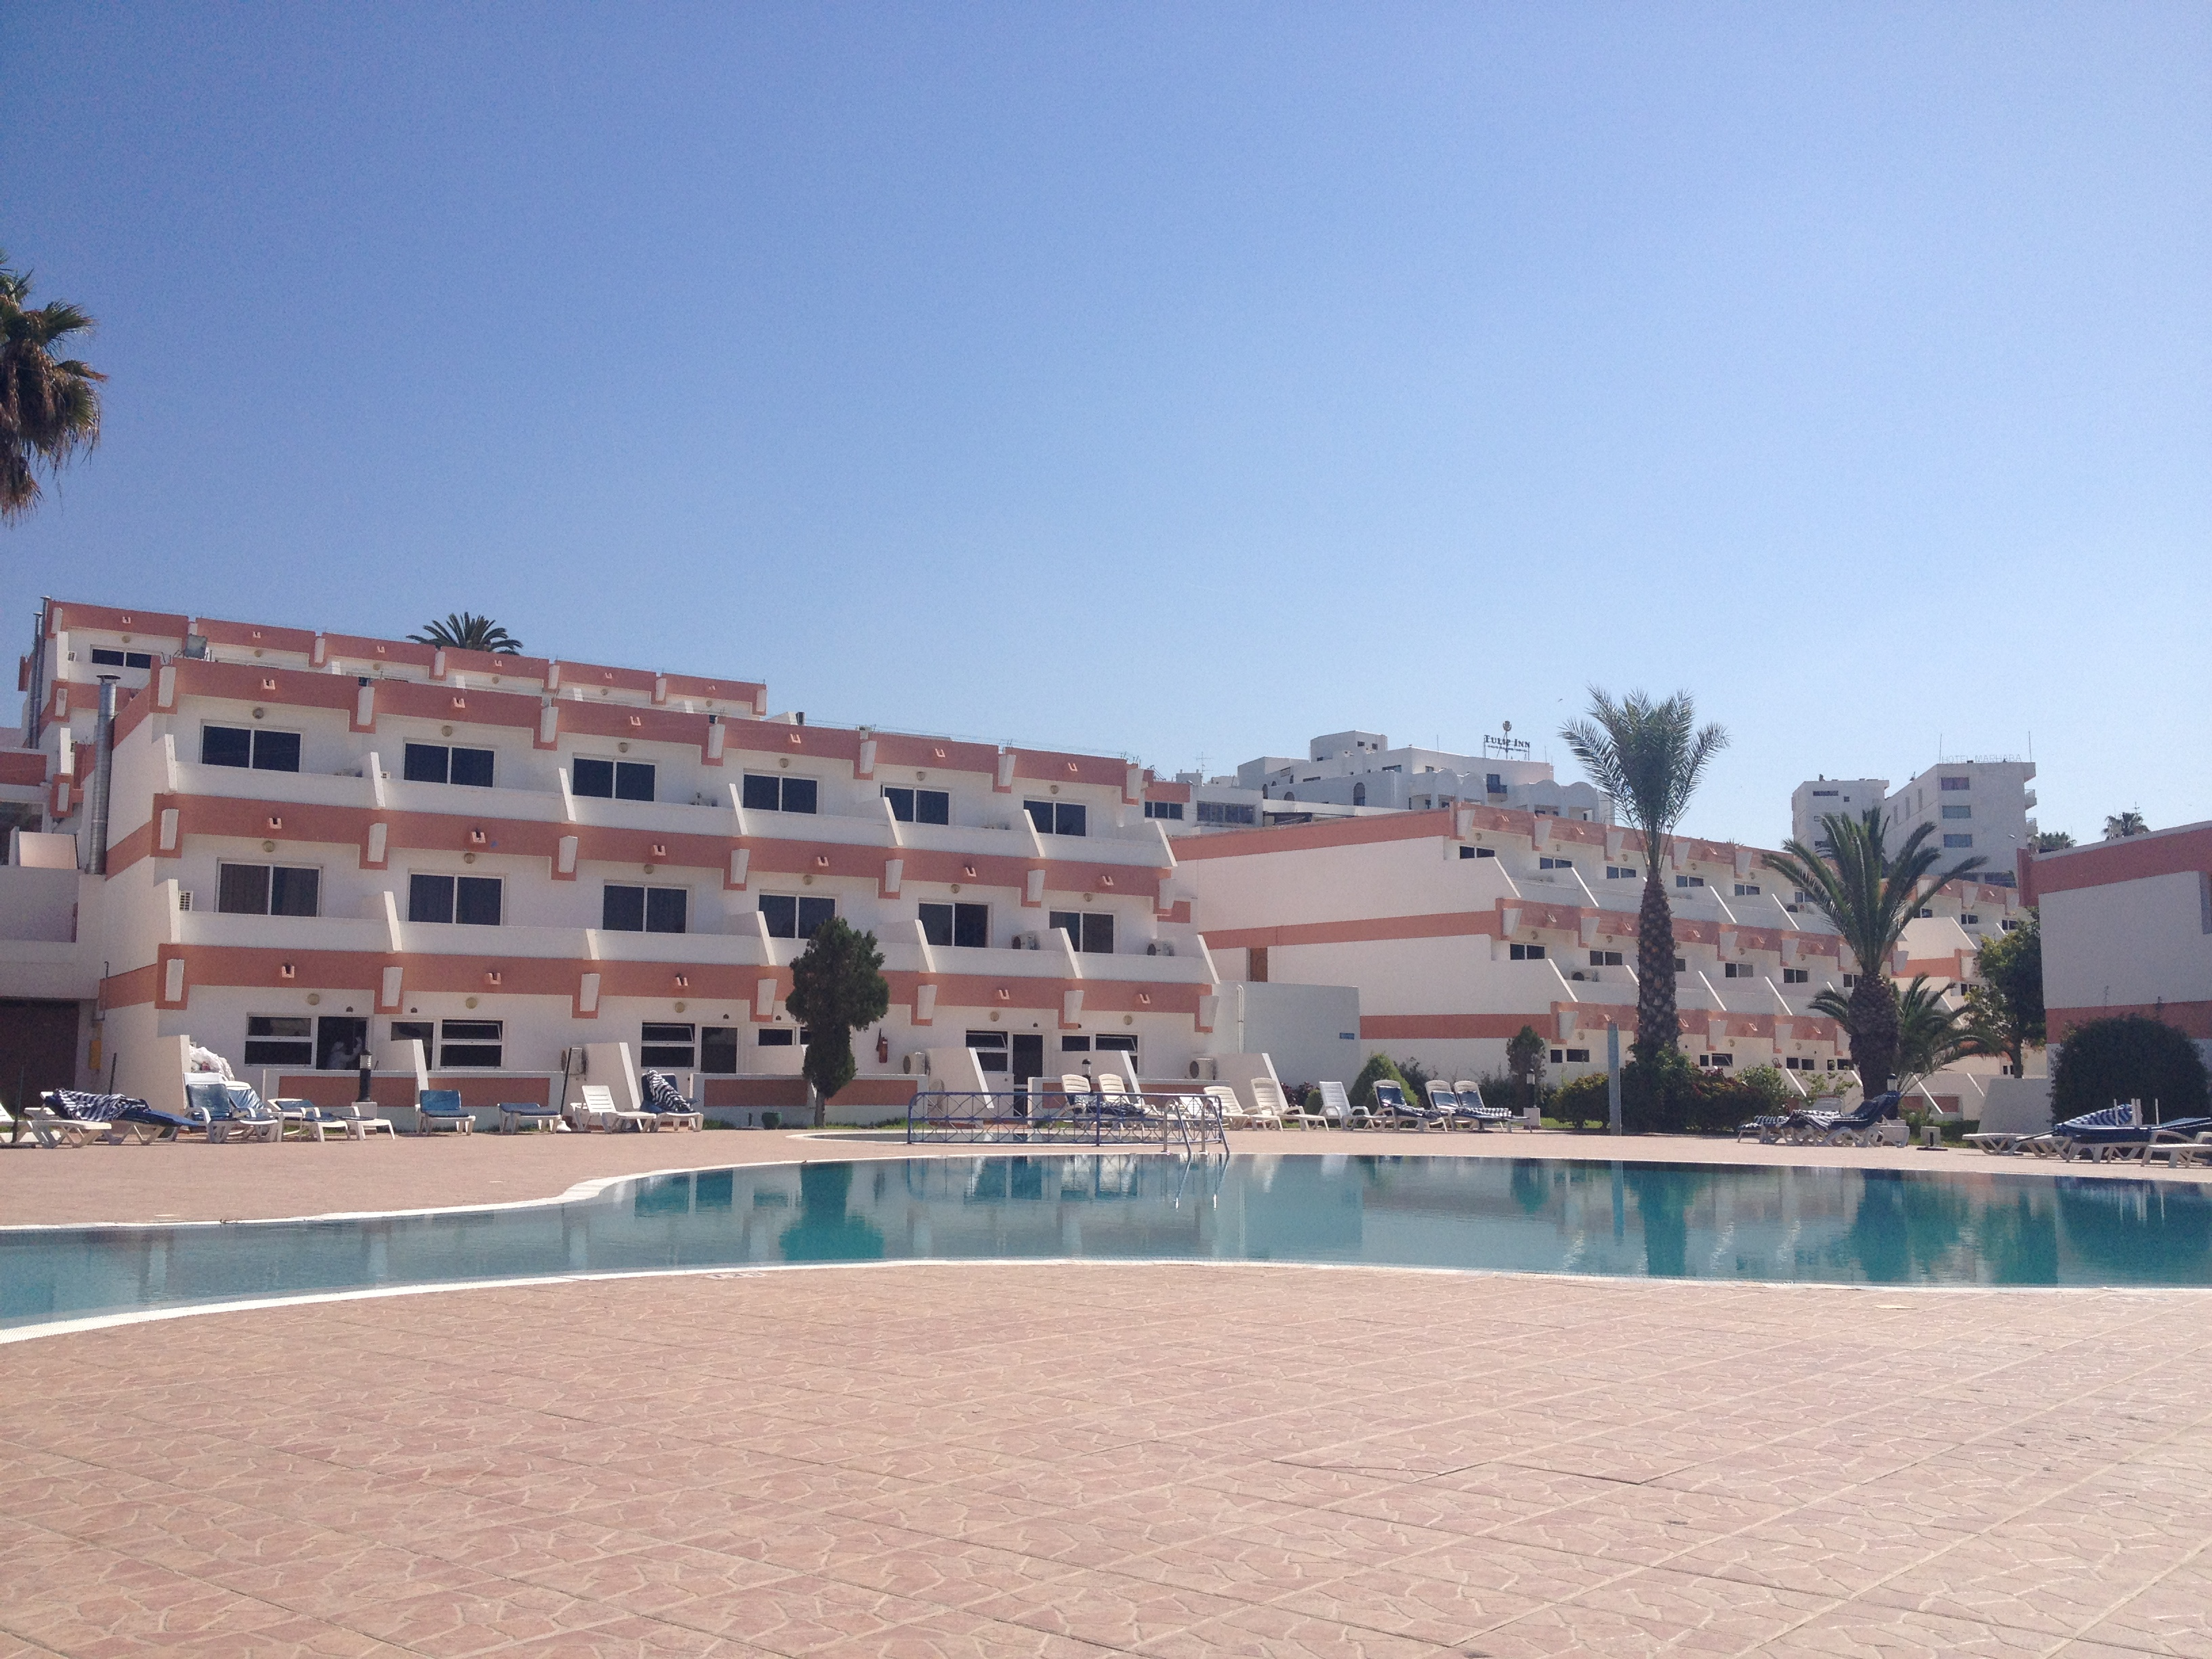 The nicer hotel rooms - 4 stories high with staggered balconies overlooking the pool